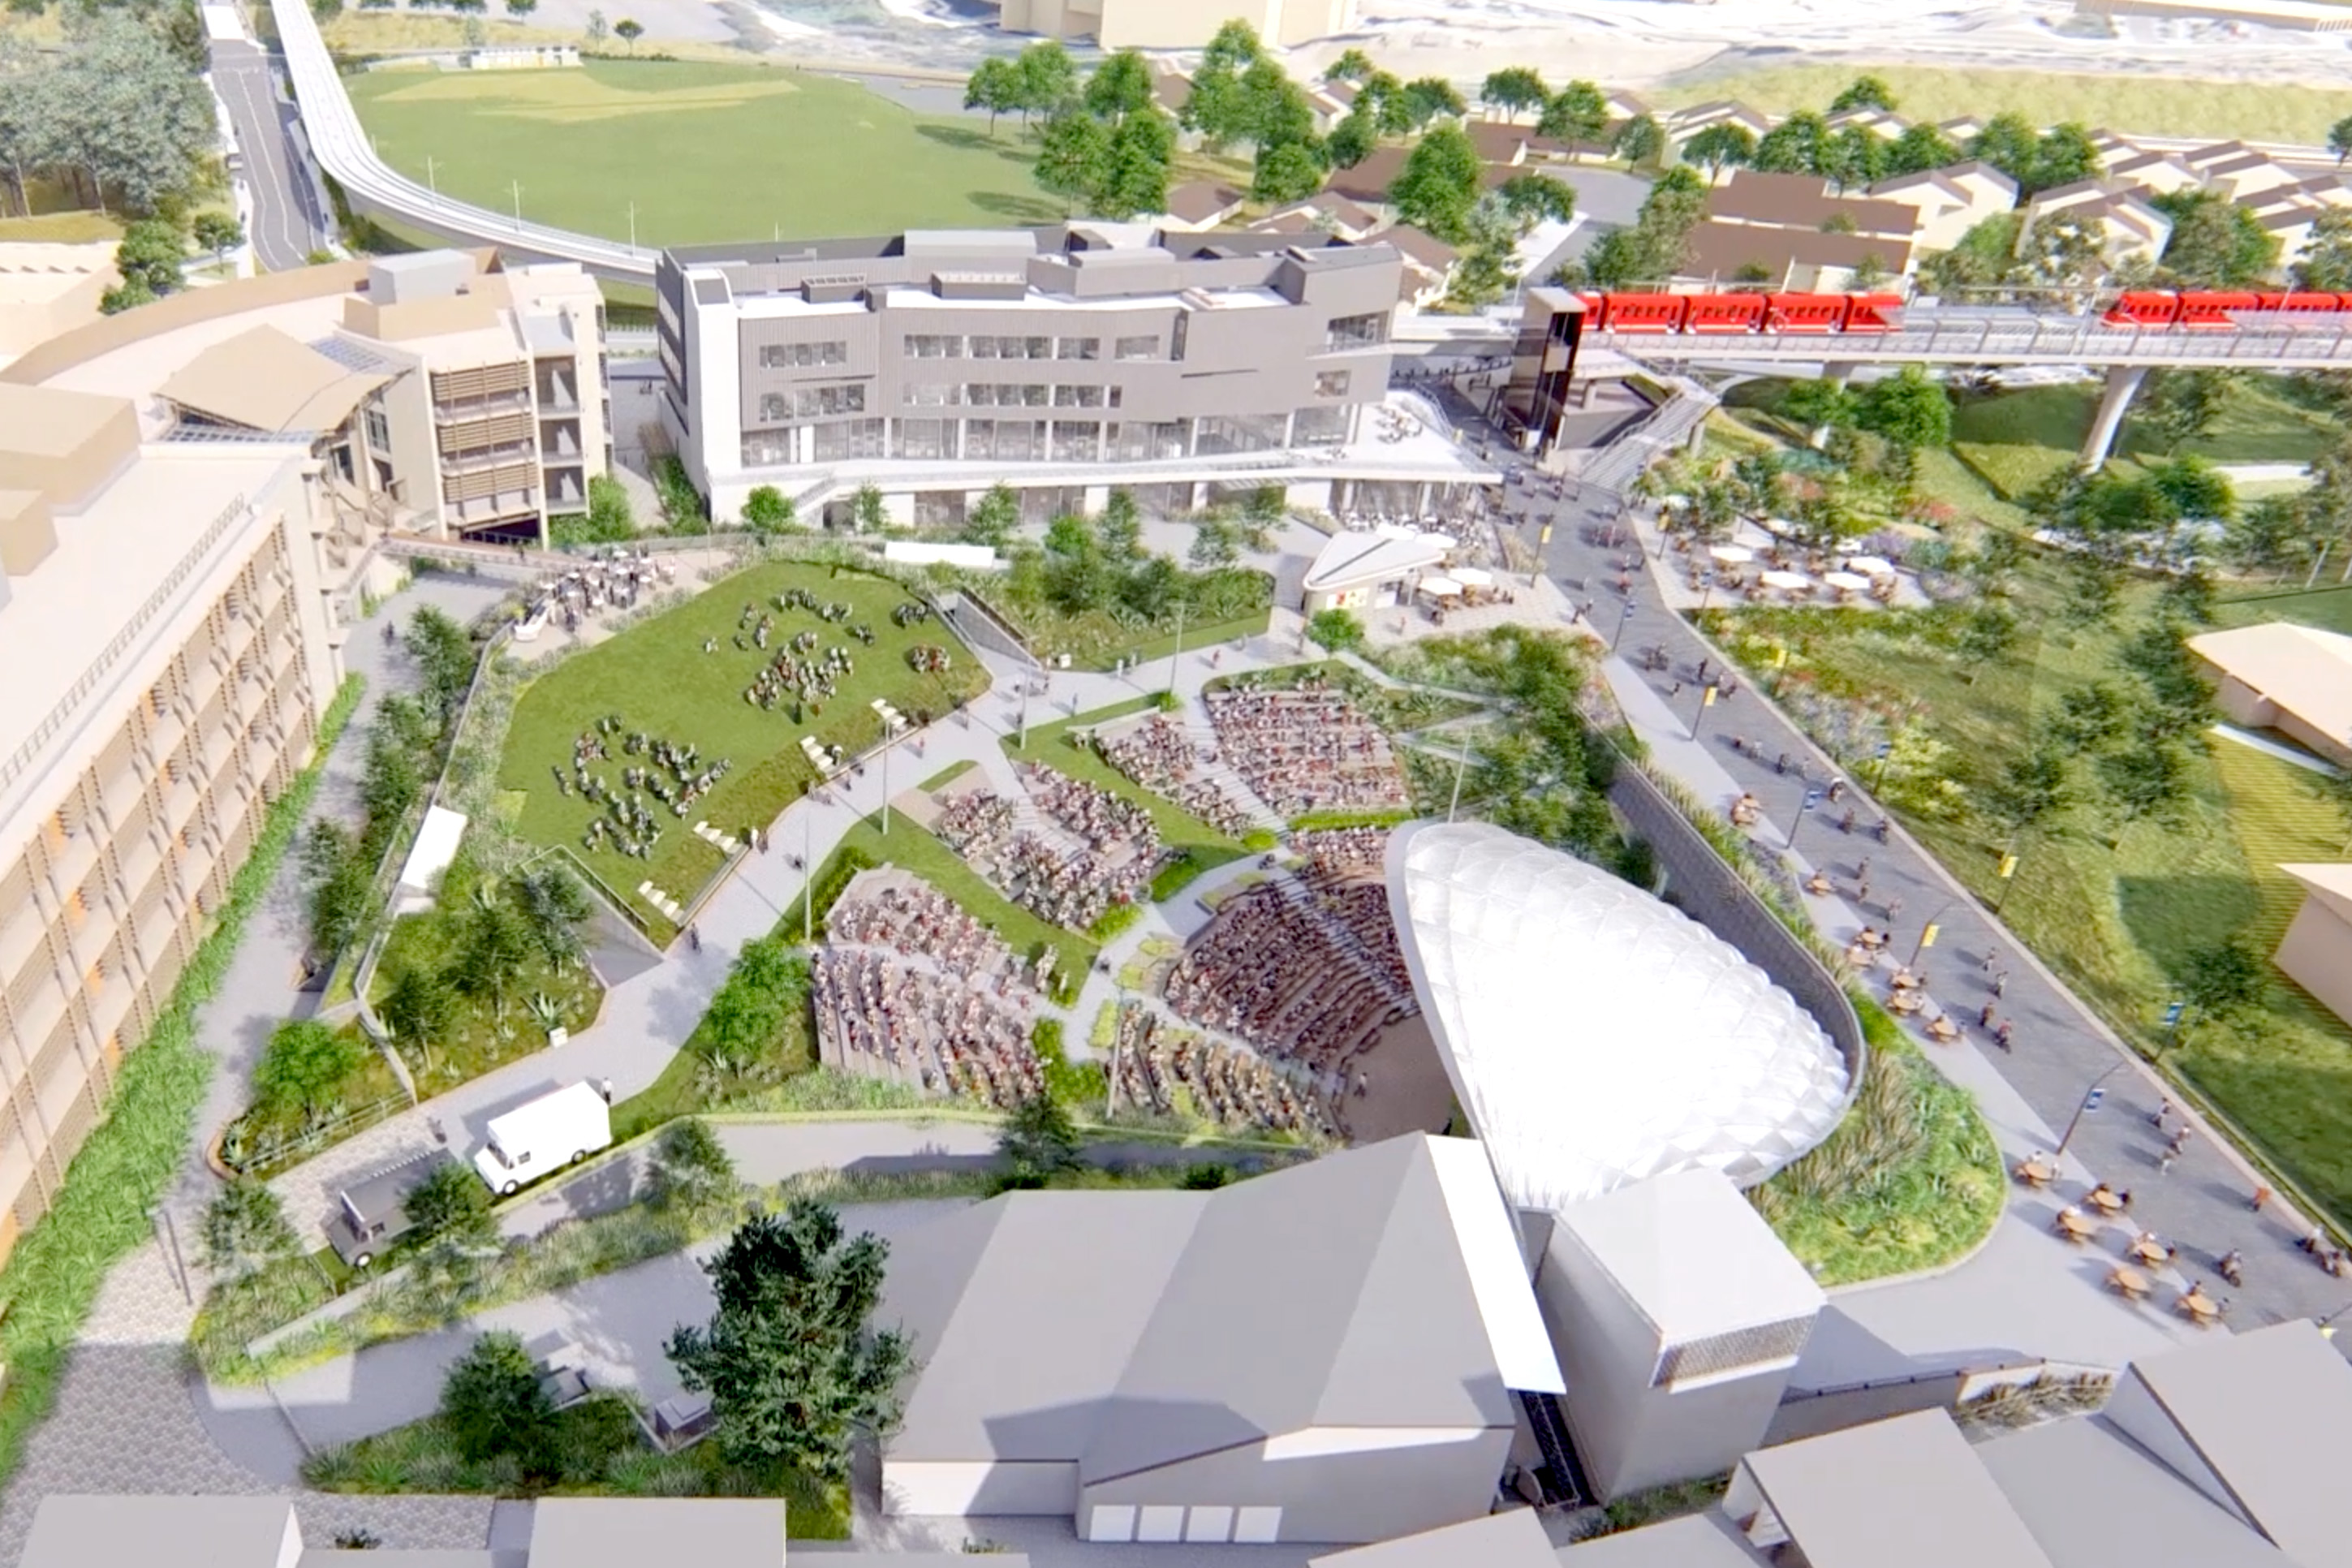 Daniel and Phyllis Epstein Donate $10 Million for State-of-the-Art Amphitheater at UC San Diego